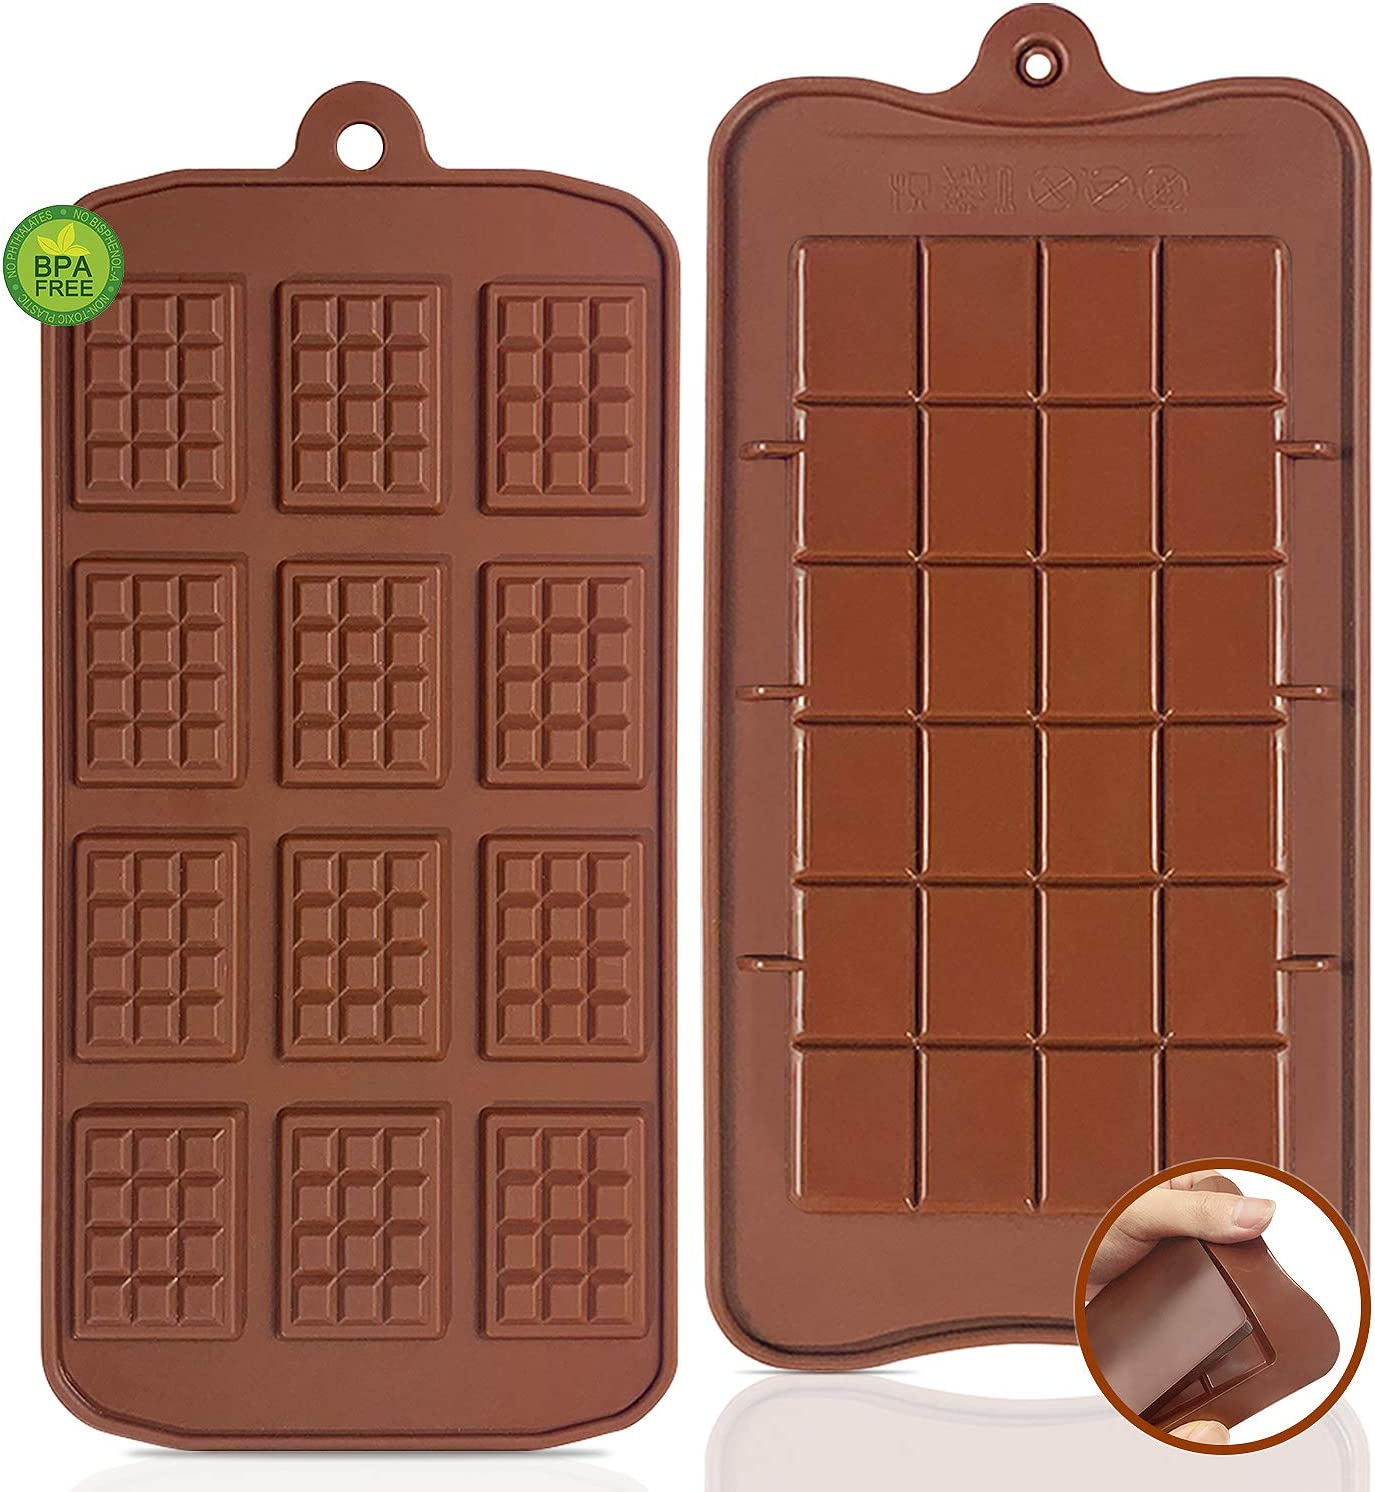 Break-Apart Chocolate, Walfos Food Grade Non-Stick Silicone chocolate waffle mold and Energy Bar chocolate Molds. 2 Packs